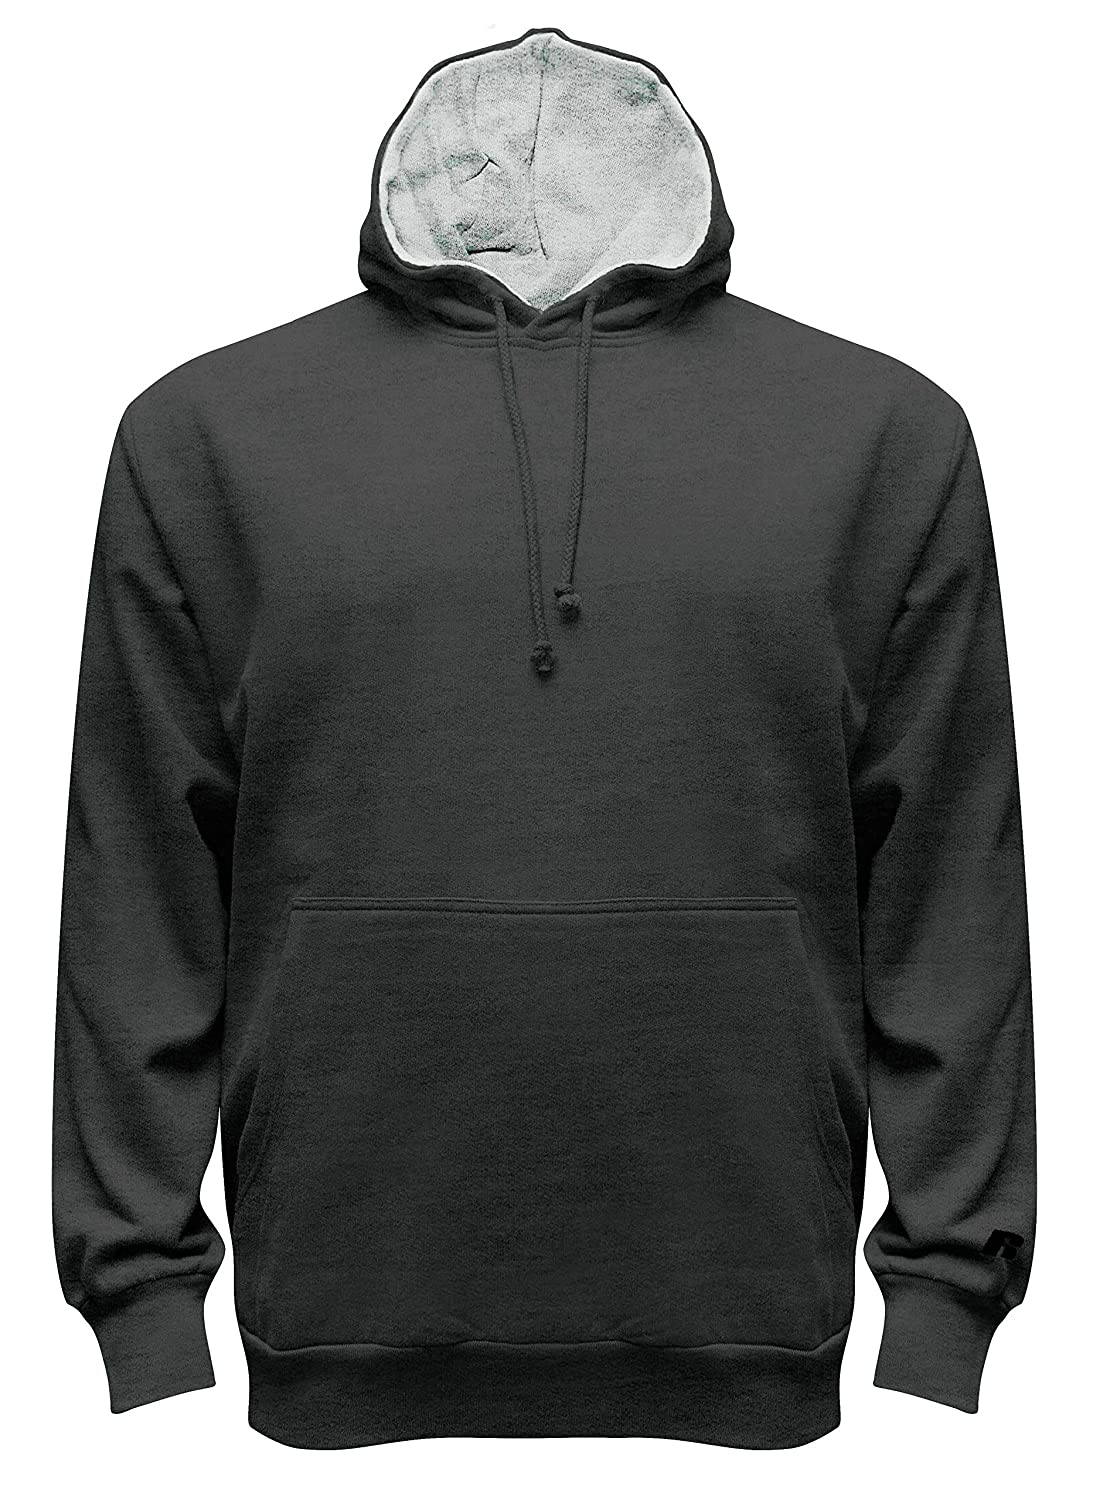 Russell Athletic Men's Big & Tall Fleece Pull-Over Hoodie Profile RFH510B